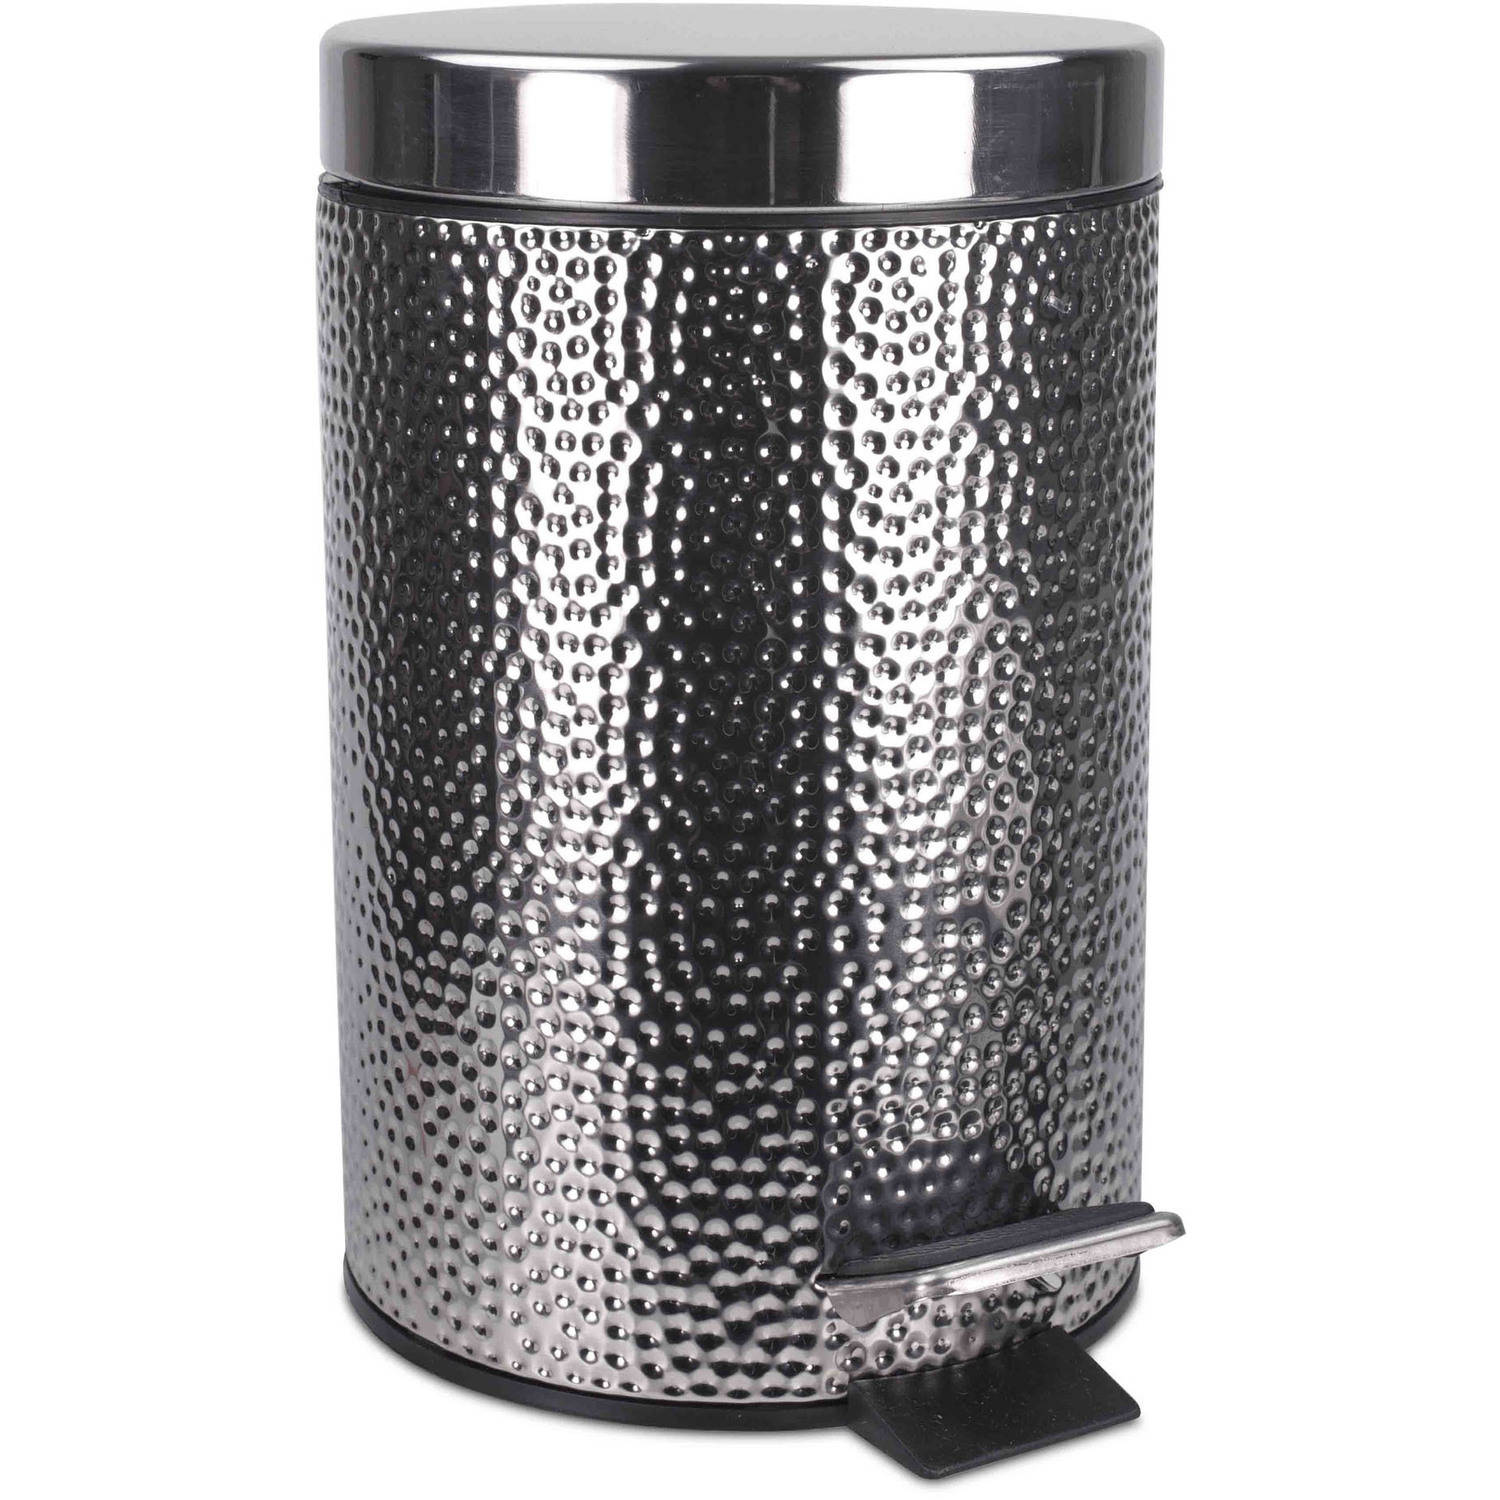 Home Basics Hammered Stainless Steel Waste Bin